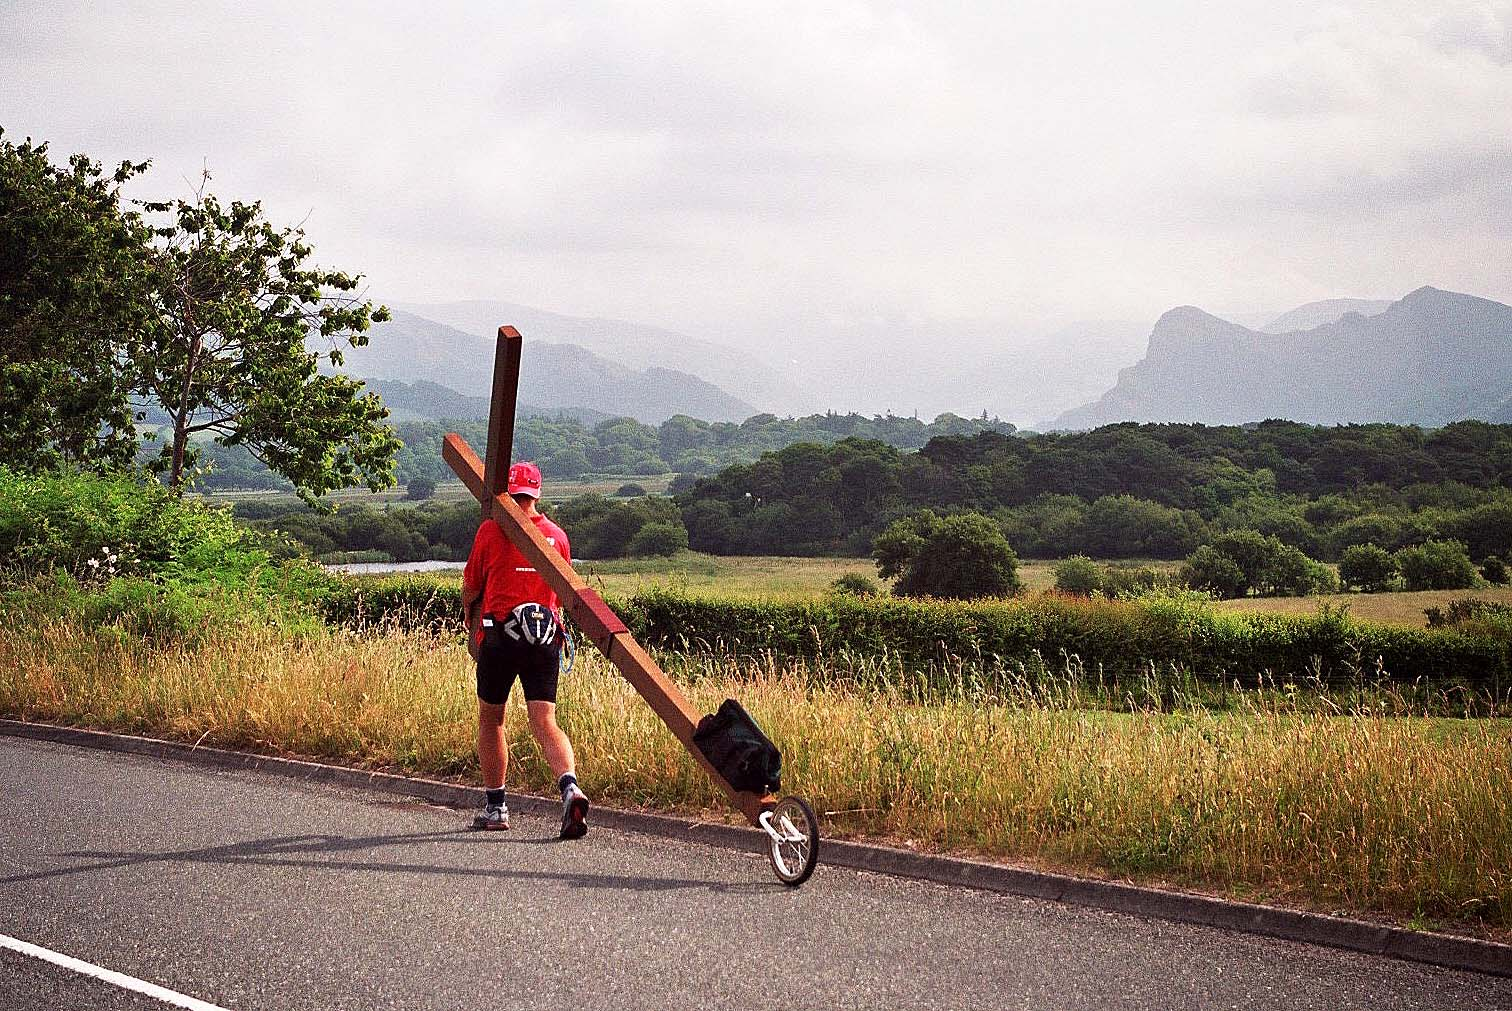 Counties evangelist Clive Cornish carries his cross in Snowdonia, North Wales. Bird Rock near Barmouth can be seen behind